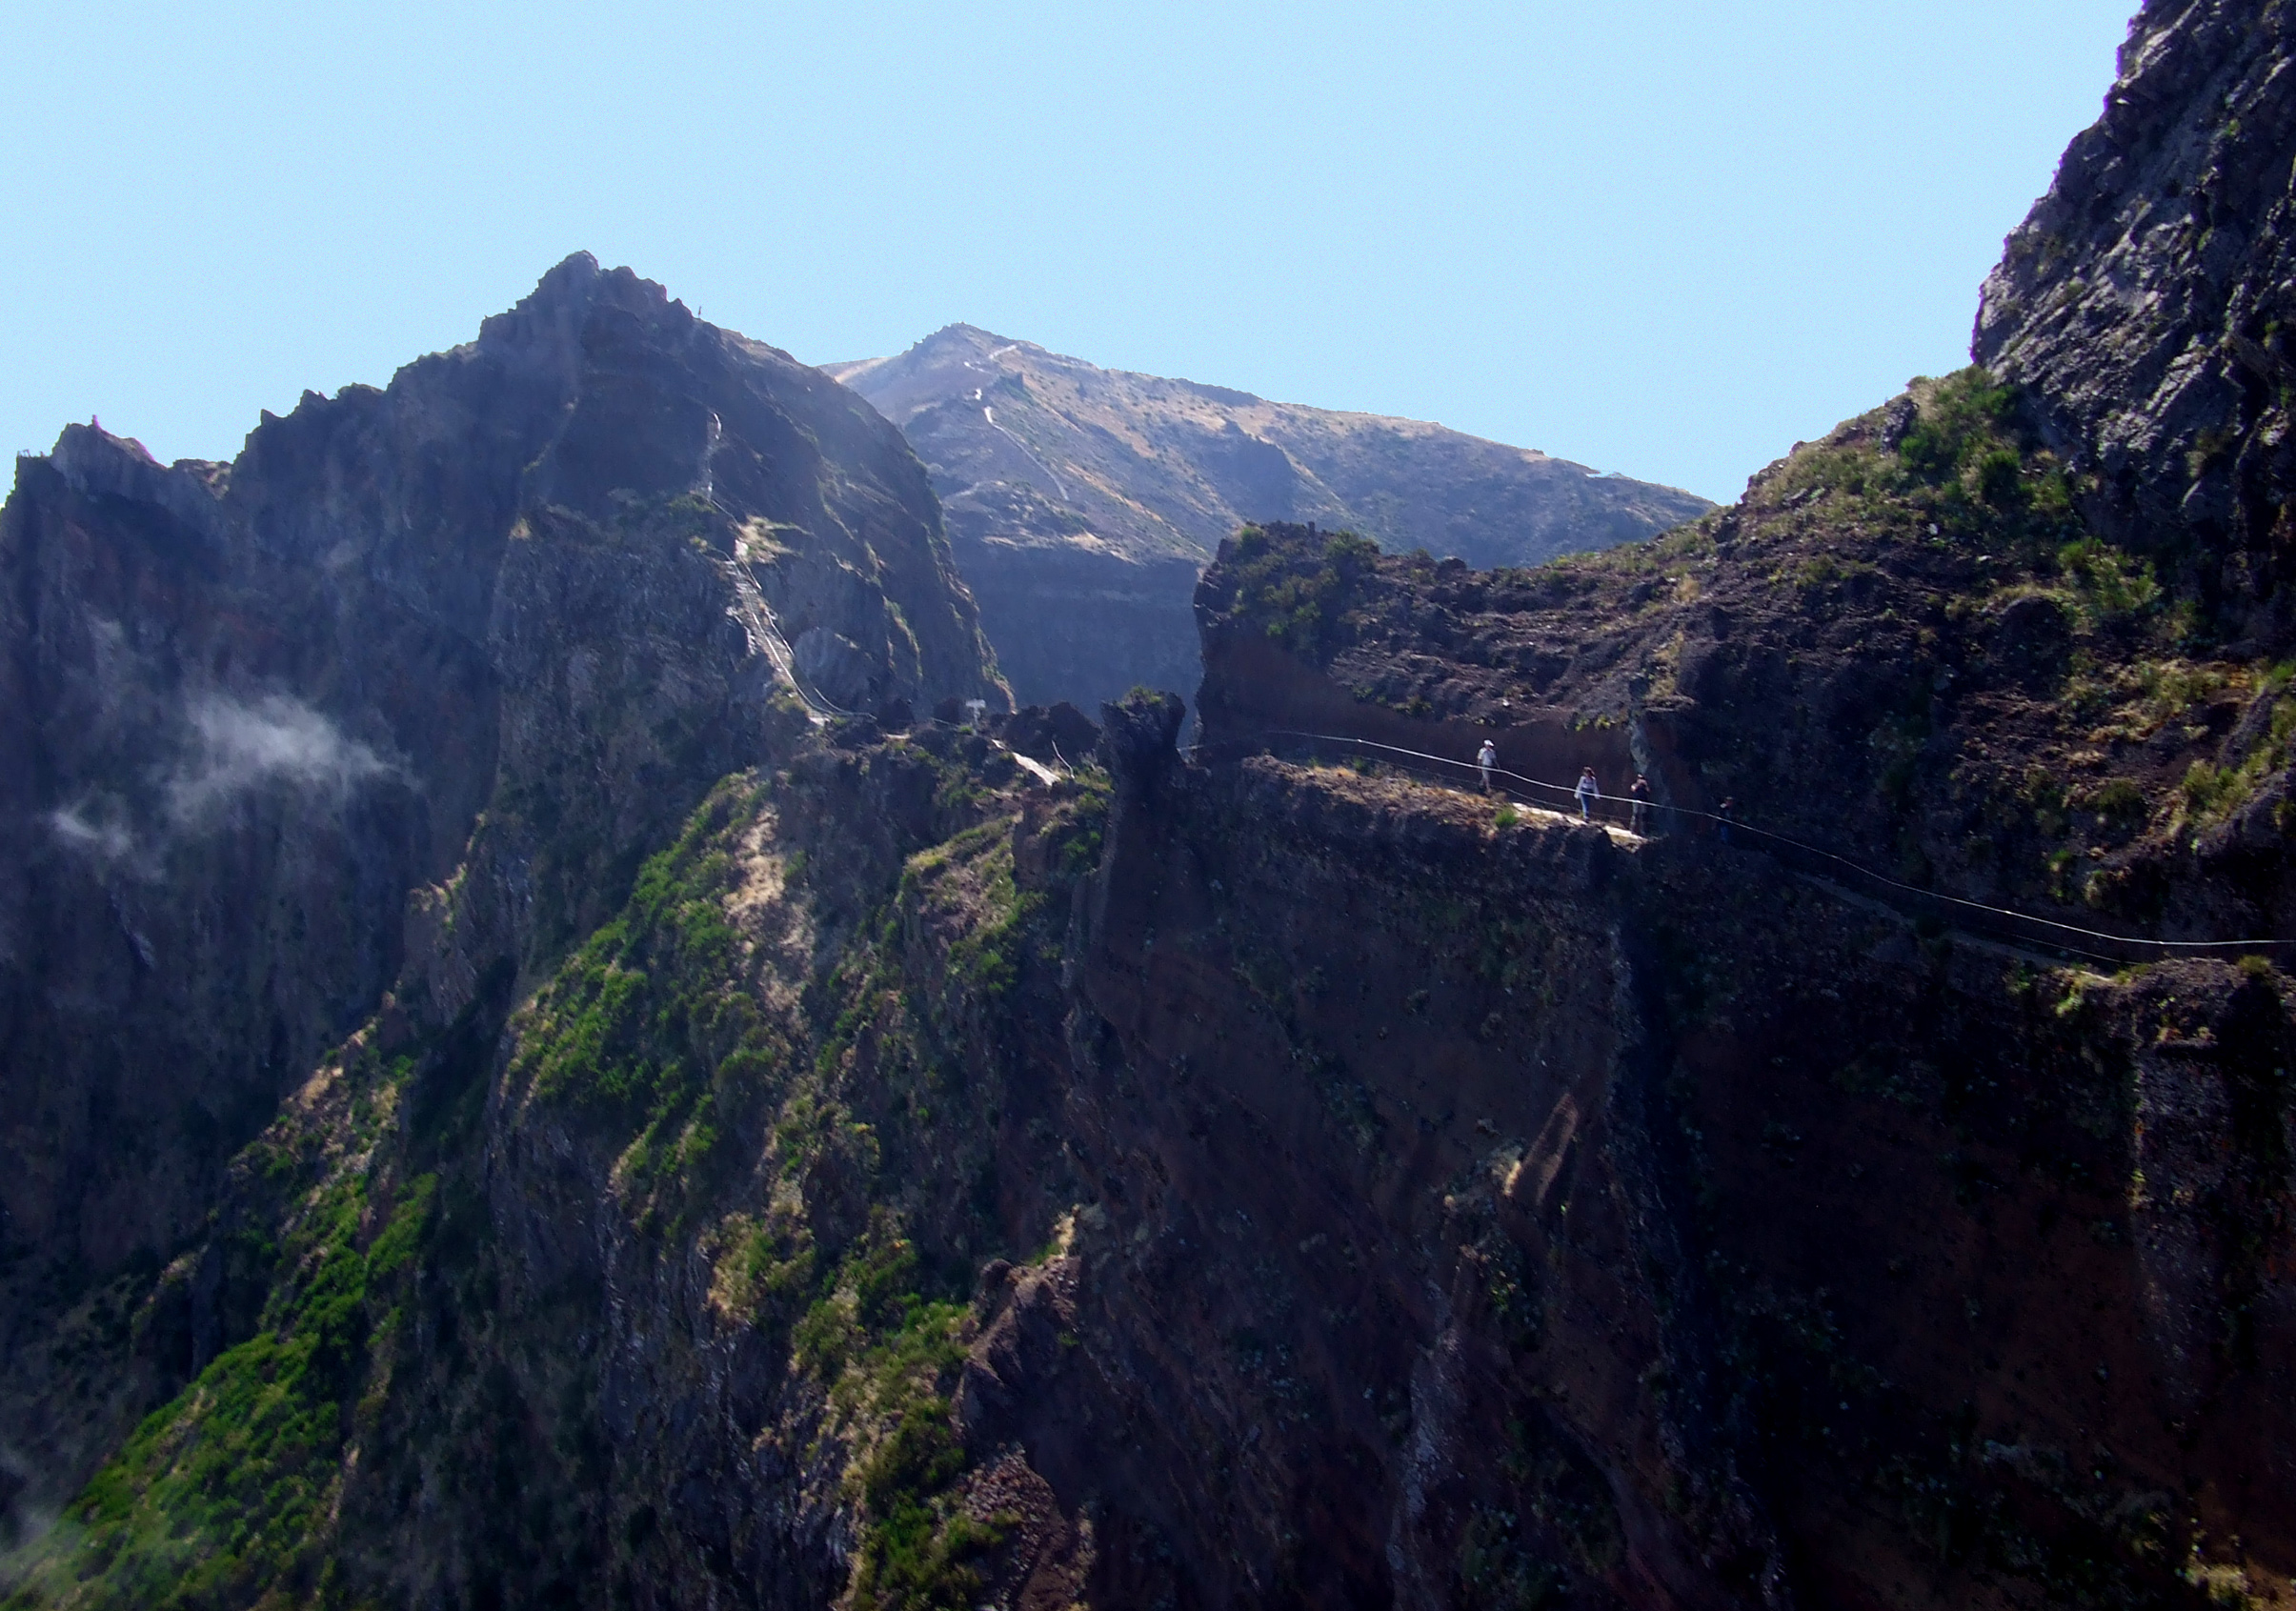 Hikers in the distance, Altitude, Summer, Ridge, Rock, HQ Photo